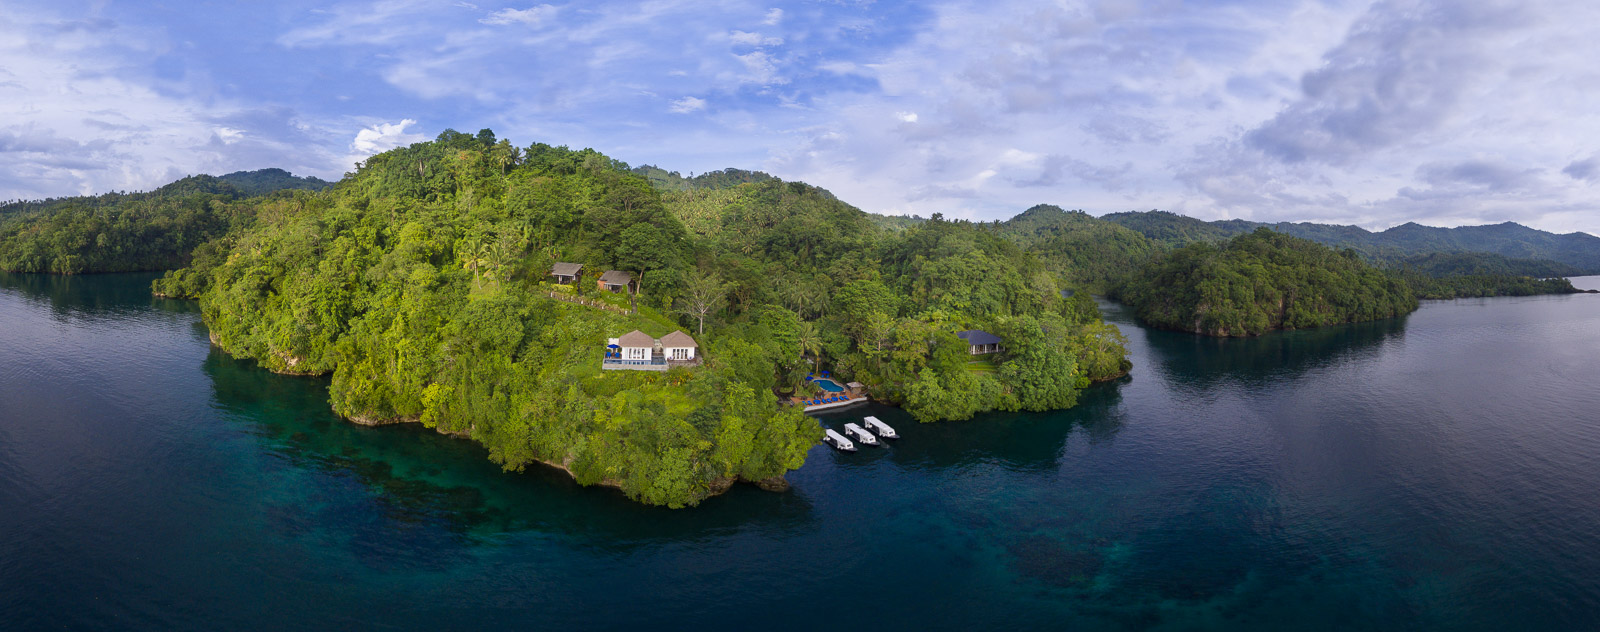 Lembeh Resort sits in the lush, green, peaceful hills of Lembeh Straight surrounded by nutrient rich waters, making it the perfect backdrop for an epic yet relaxing dive adventure.